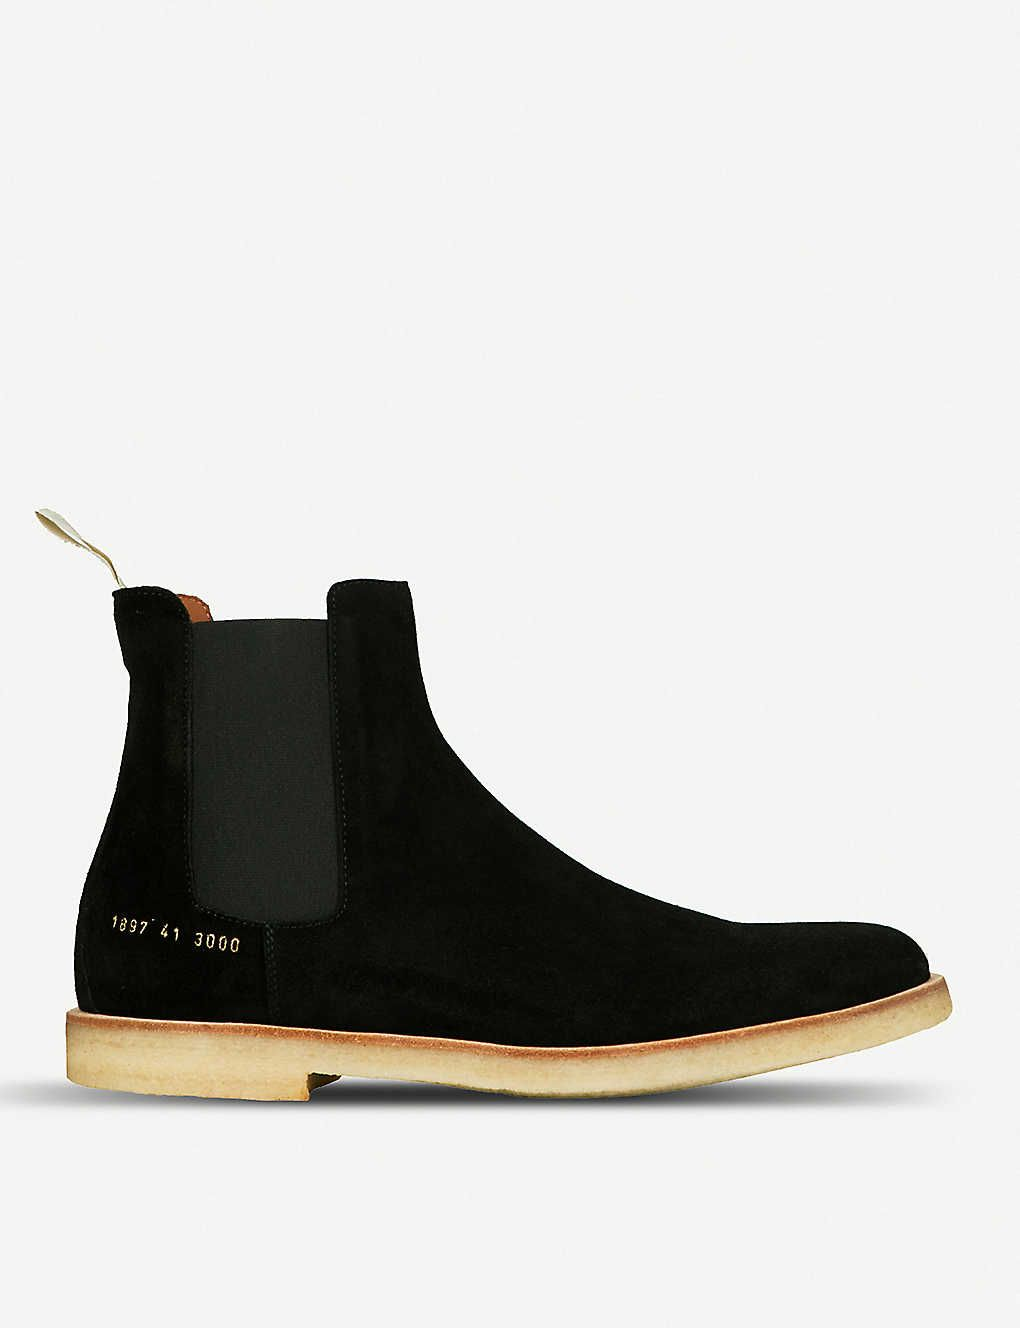 Round-toe suede Chelsea boots | Chelsea